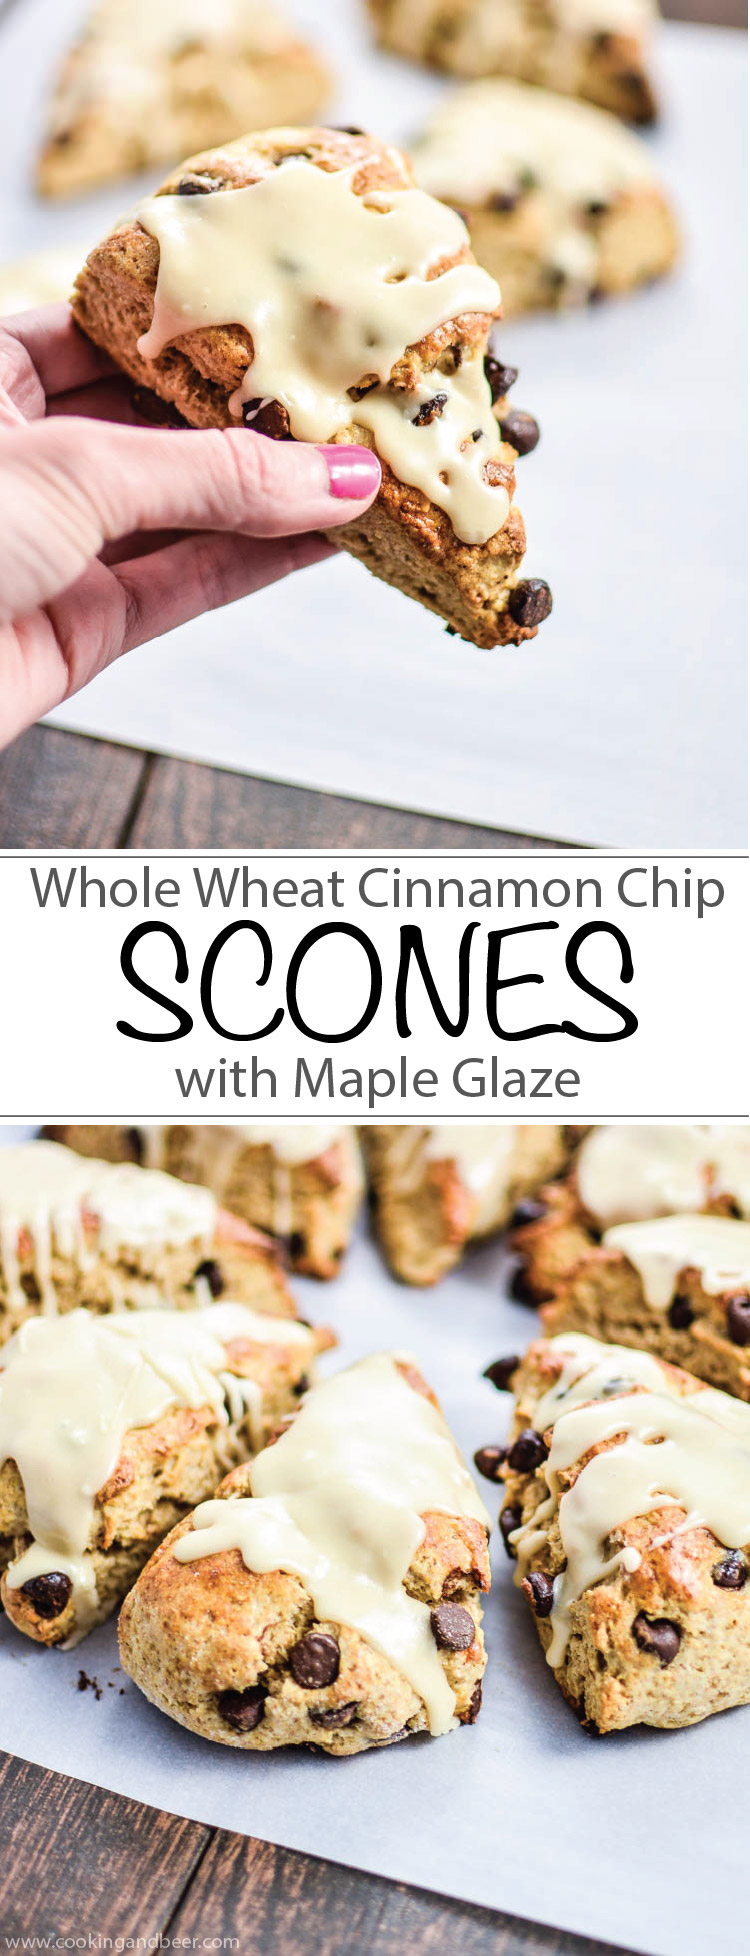 Whole Wheat Cinnamon Chocolate Chip Scones with Maple Glaze | www.cookingandbeer.com | #SweetWarmUp #Ad